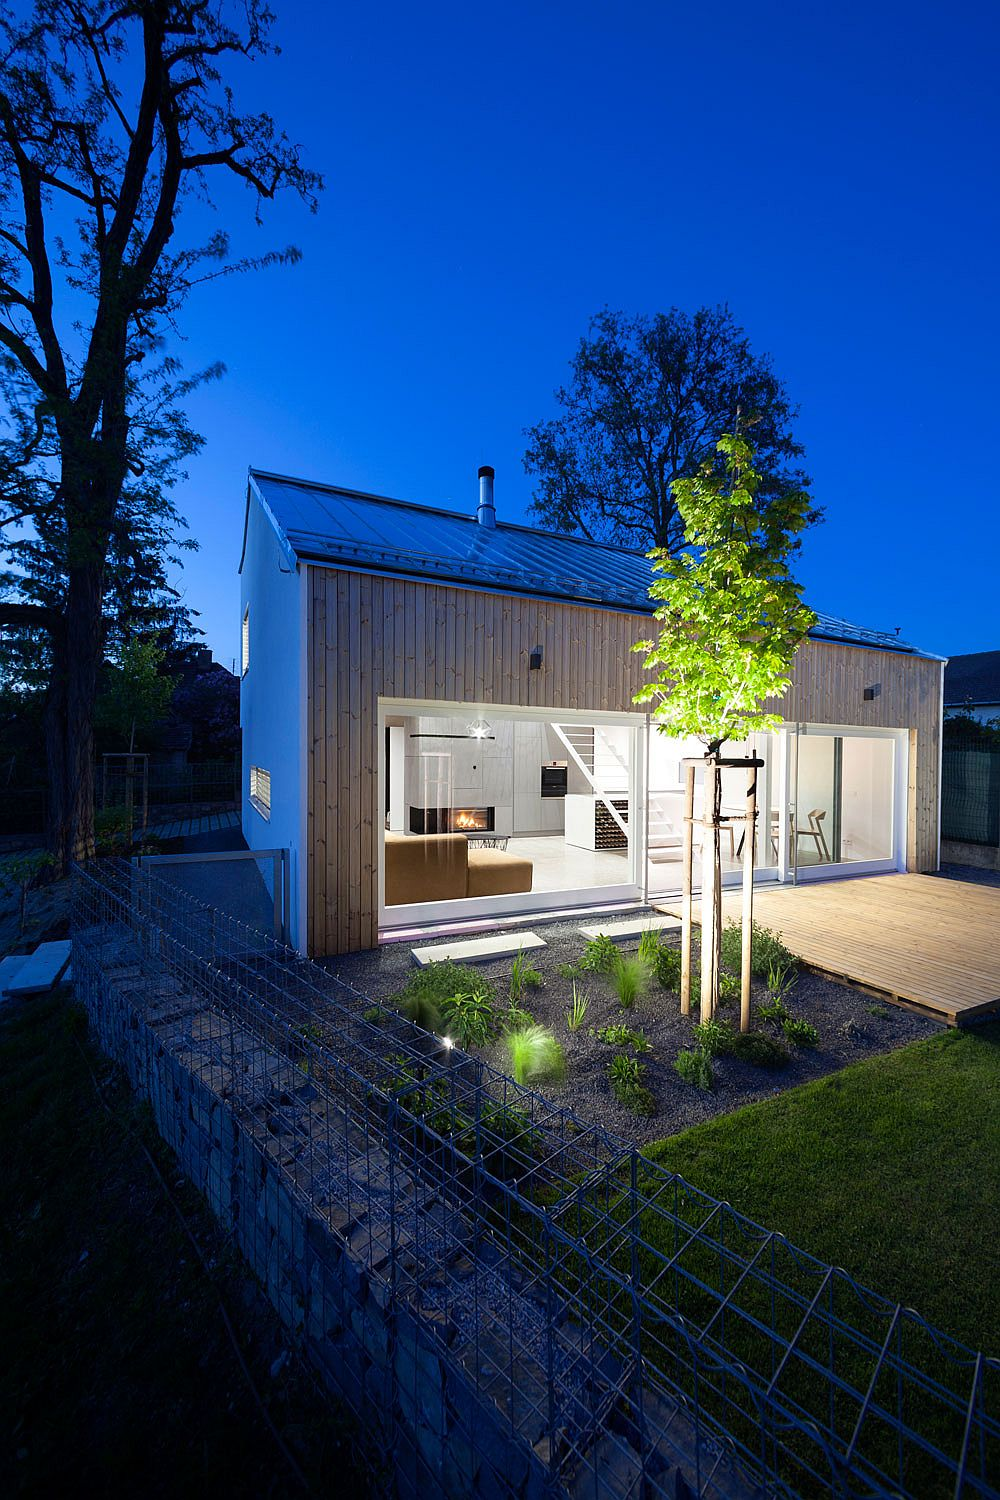 Lighting adds ambiance to the garden and the deck